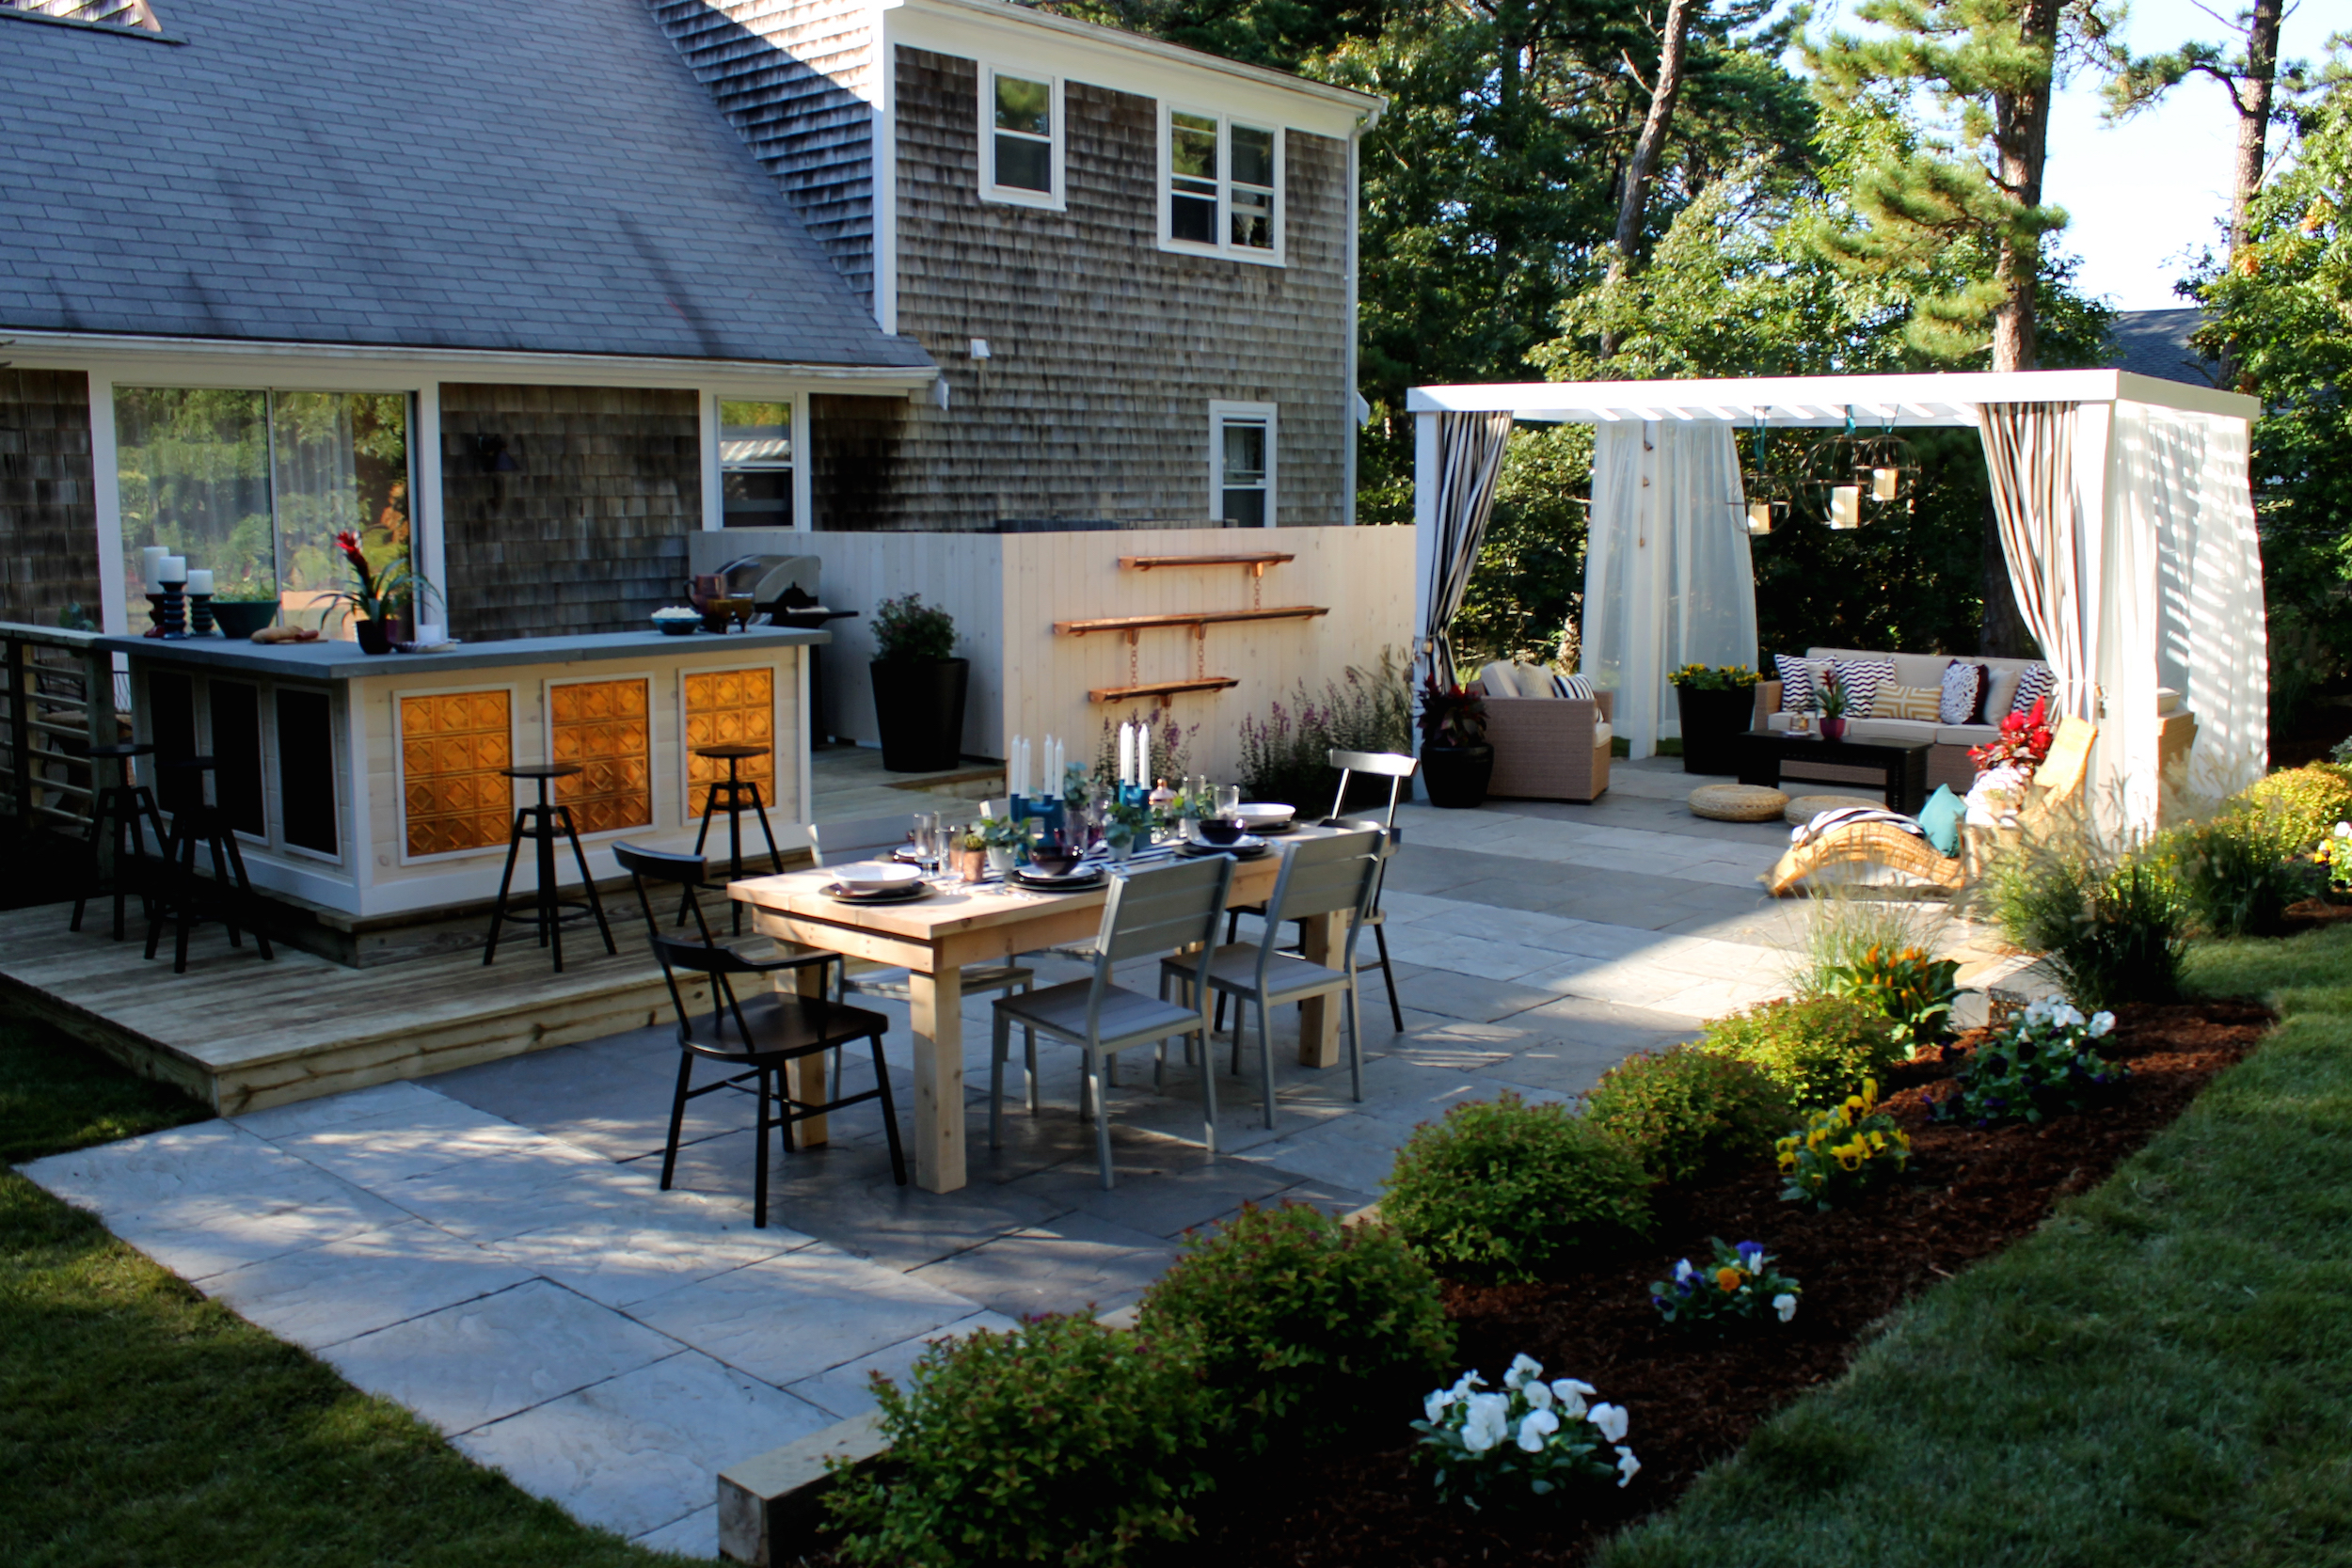 17 Landscaping Ideas For A Low-Maintenance Yard on Low Maintenance Back Garden Ideas id=98600